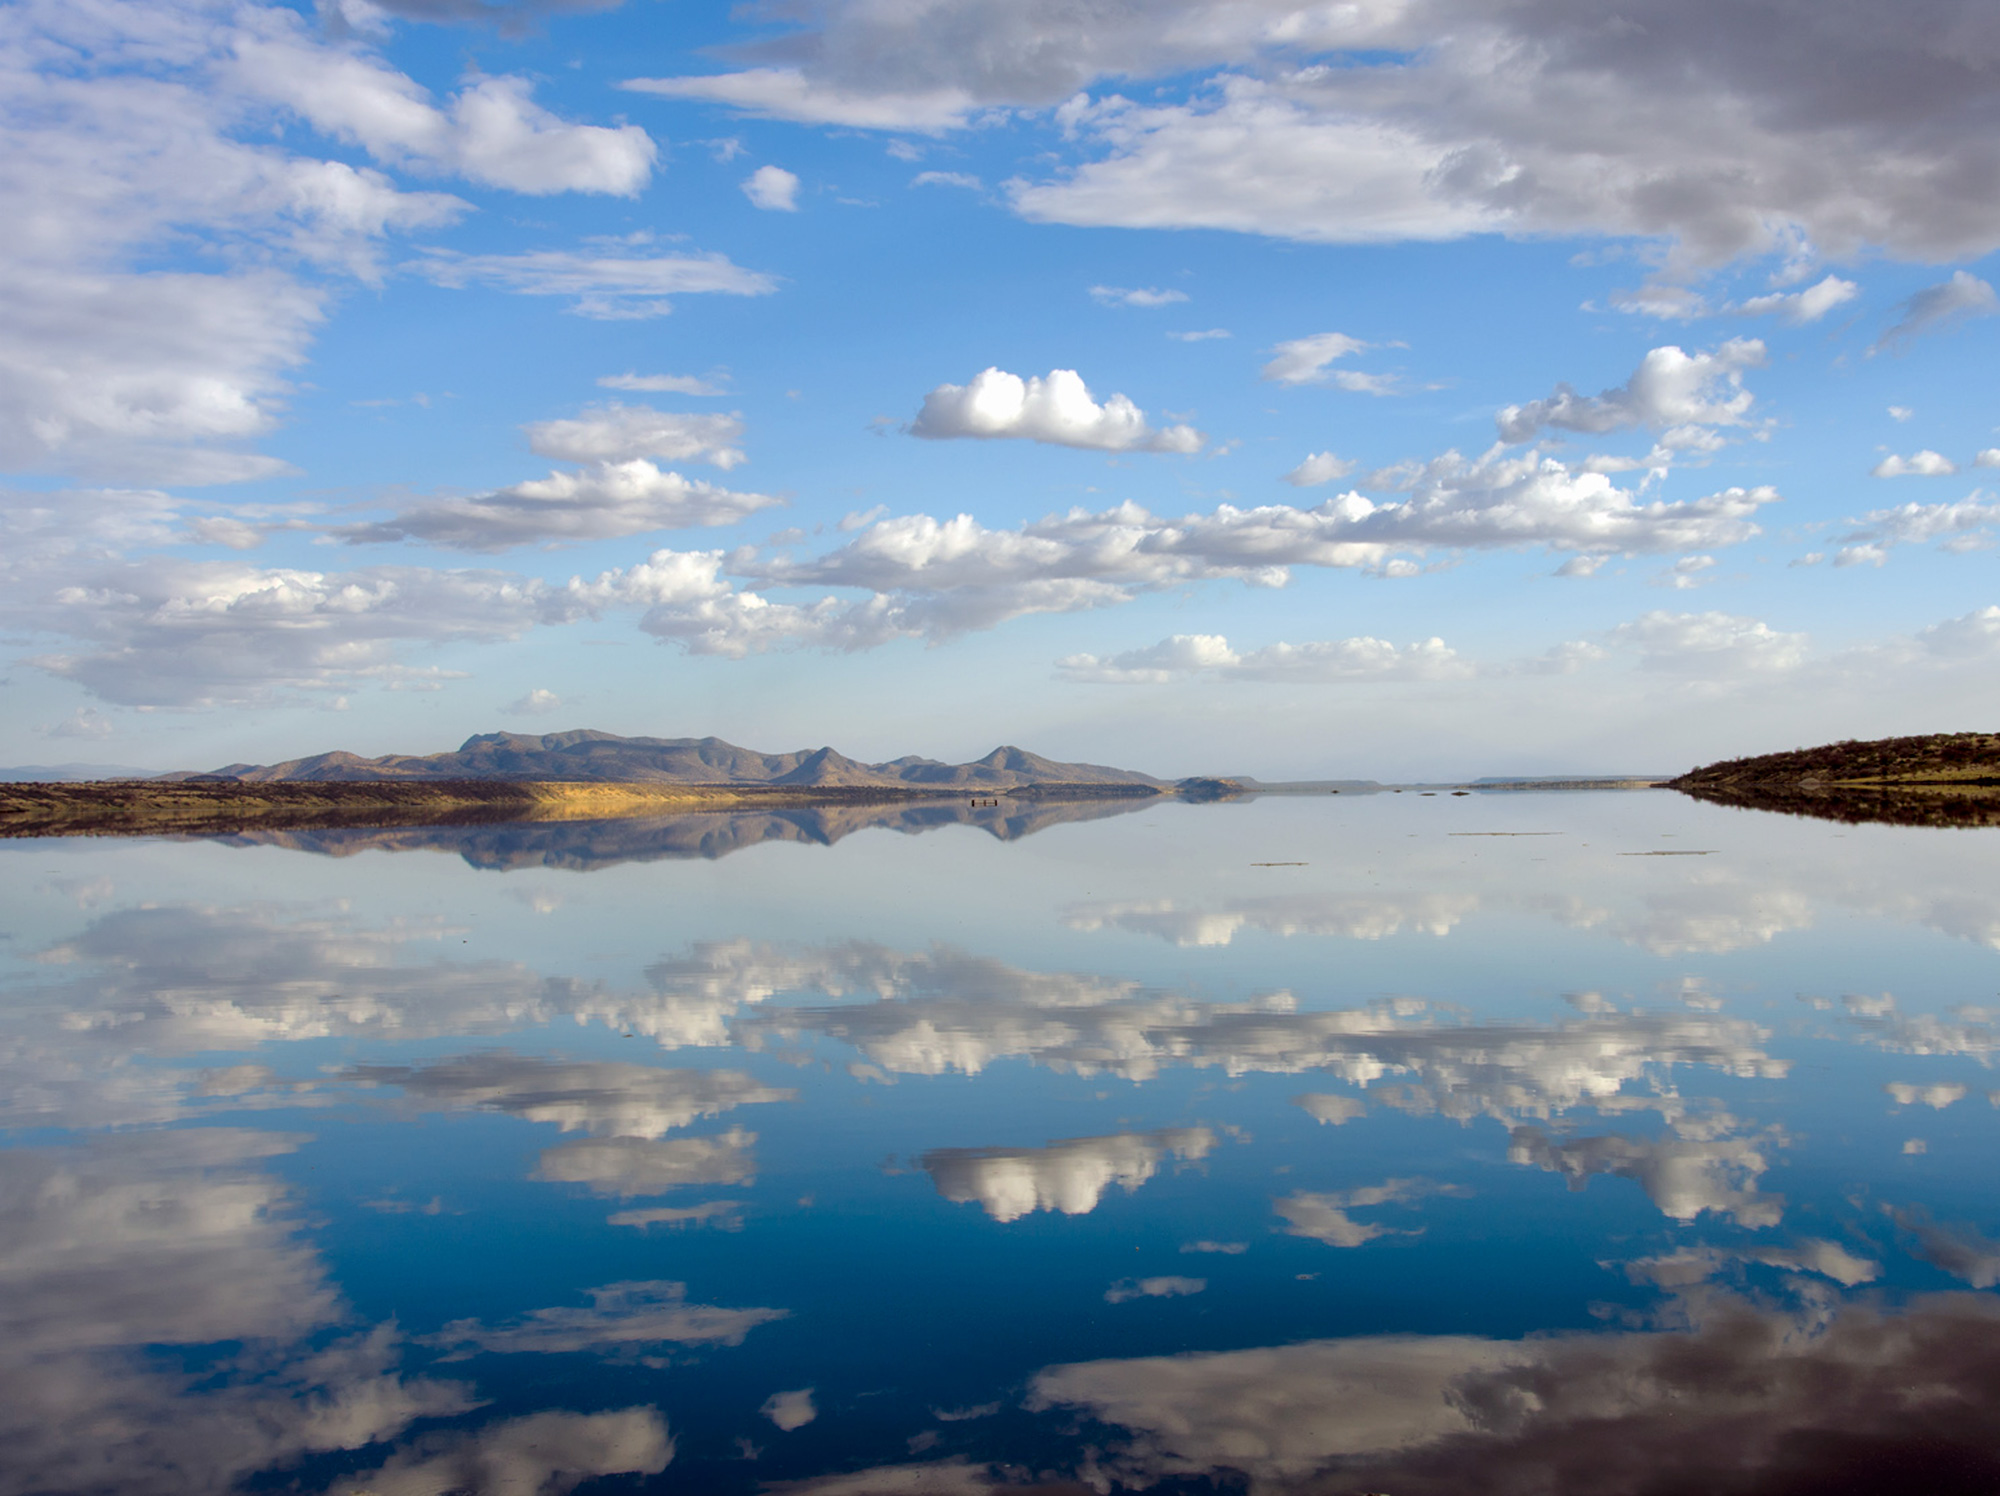 Lake Magadi, pictured during the wet season, periodically dries and floods in response to seasonal rains that cover the lakebed evaporites with up to 3 to 6 feet of water.